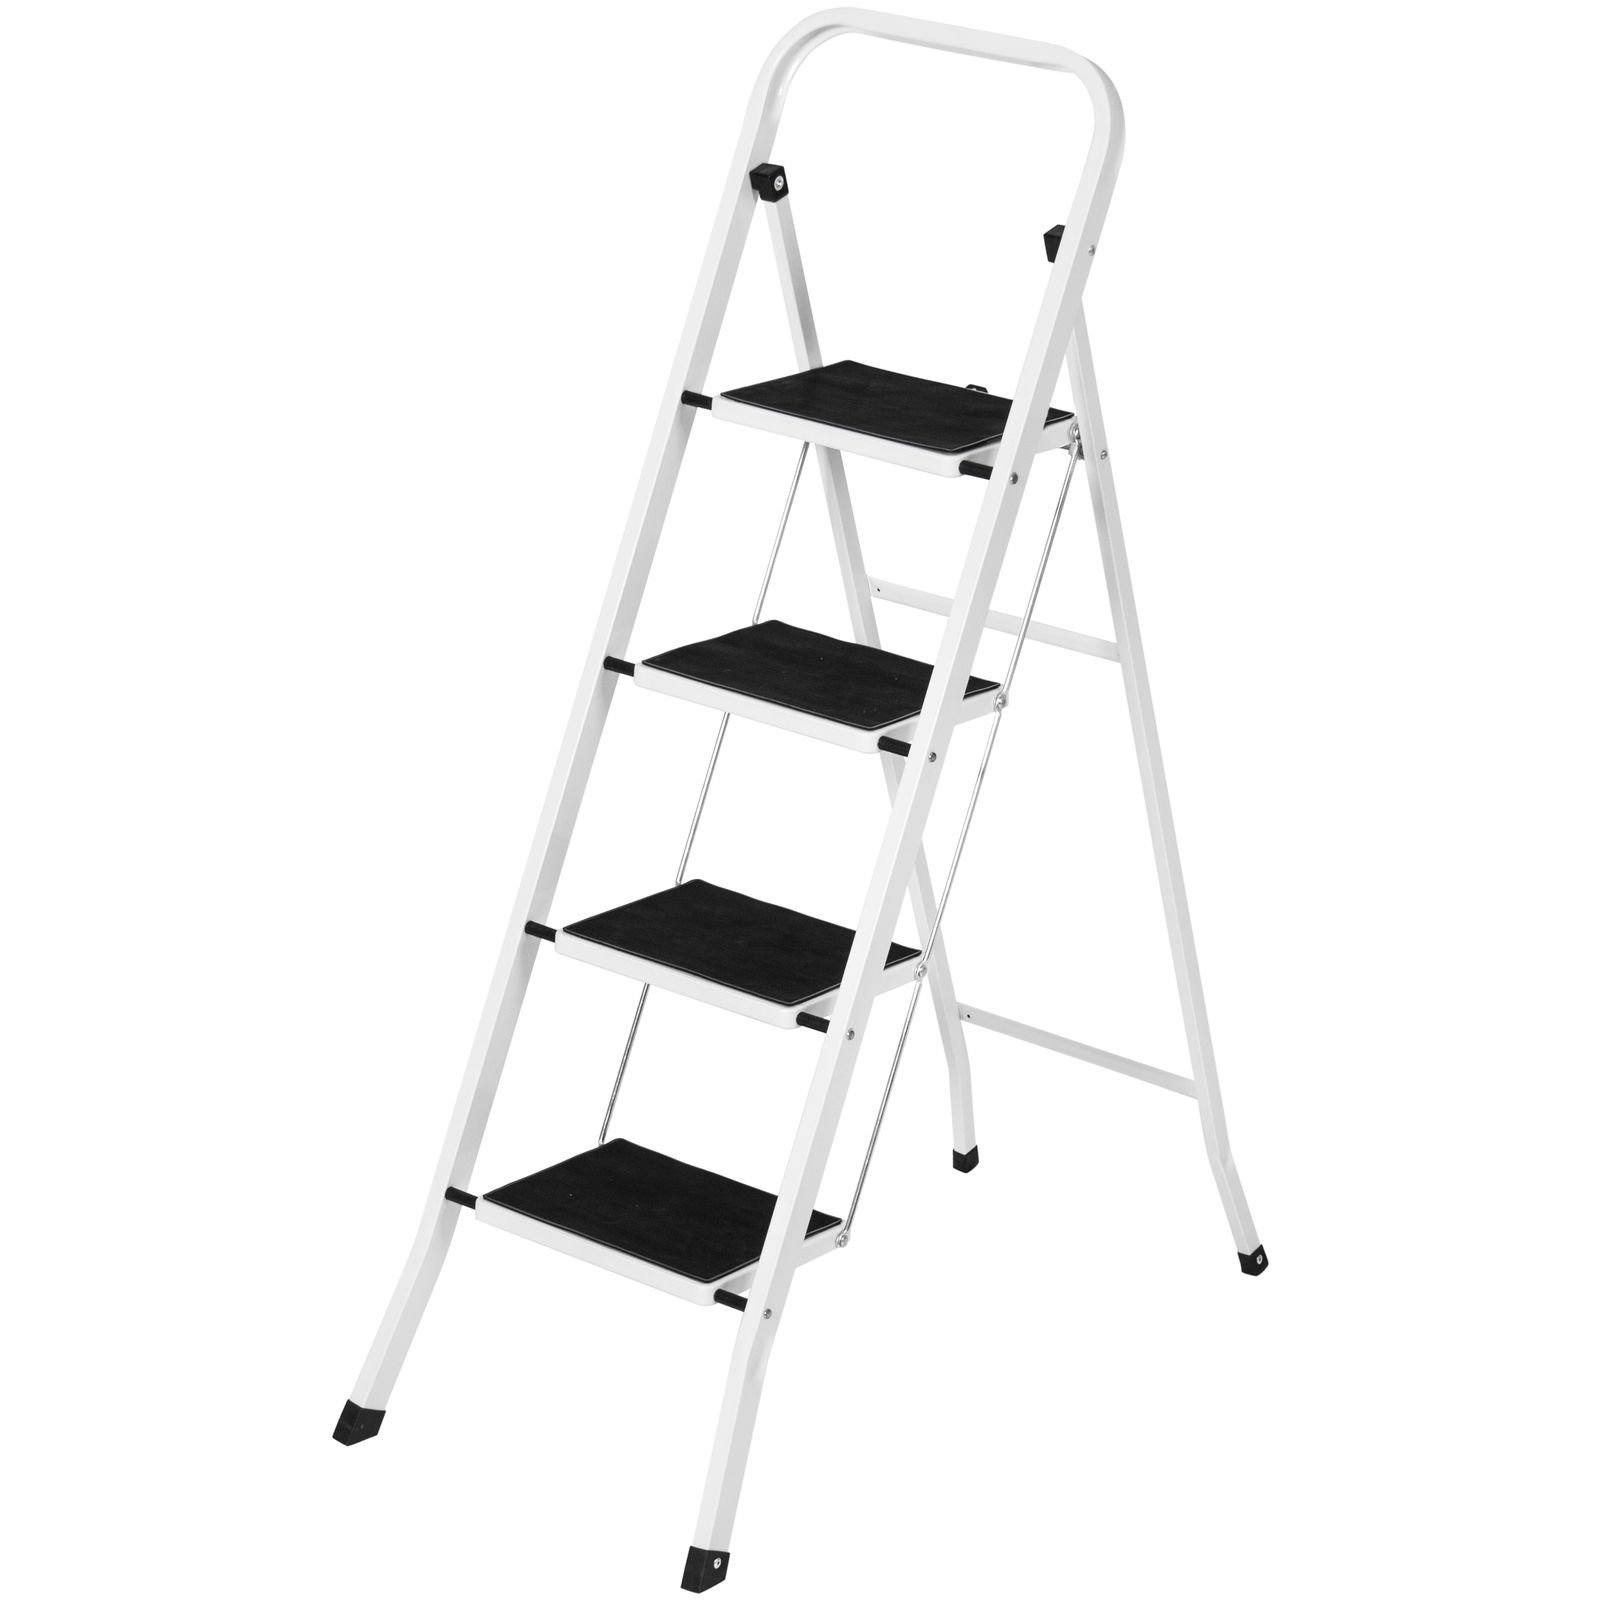 4 Step Ladder Steel Stool 300lb Heavy Duty Lightweight Portable Folding